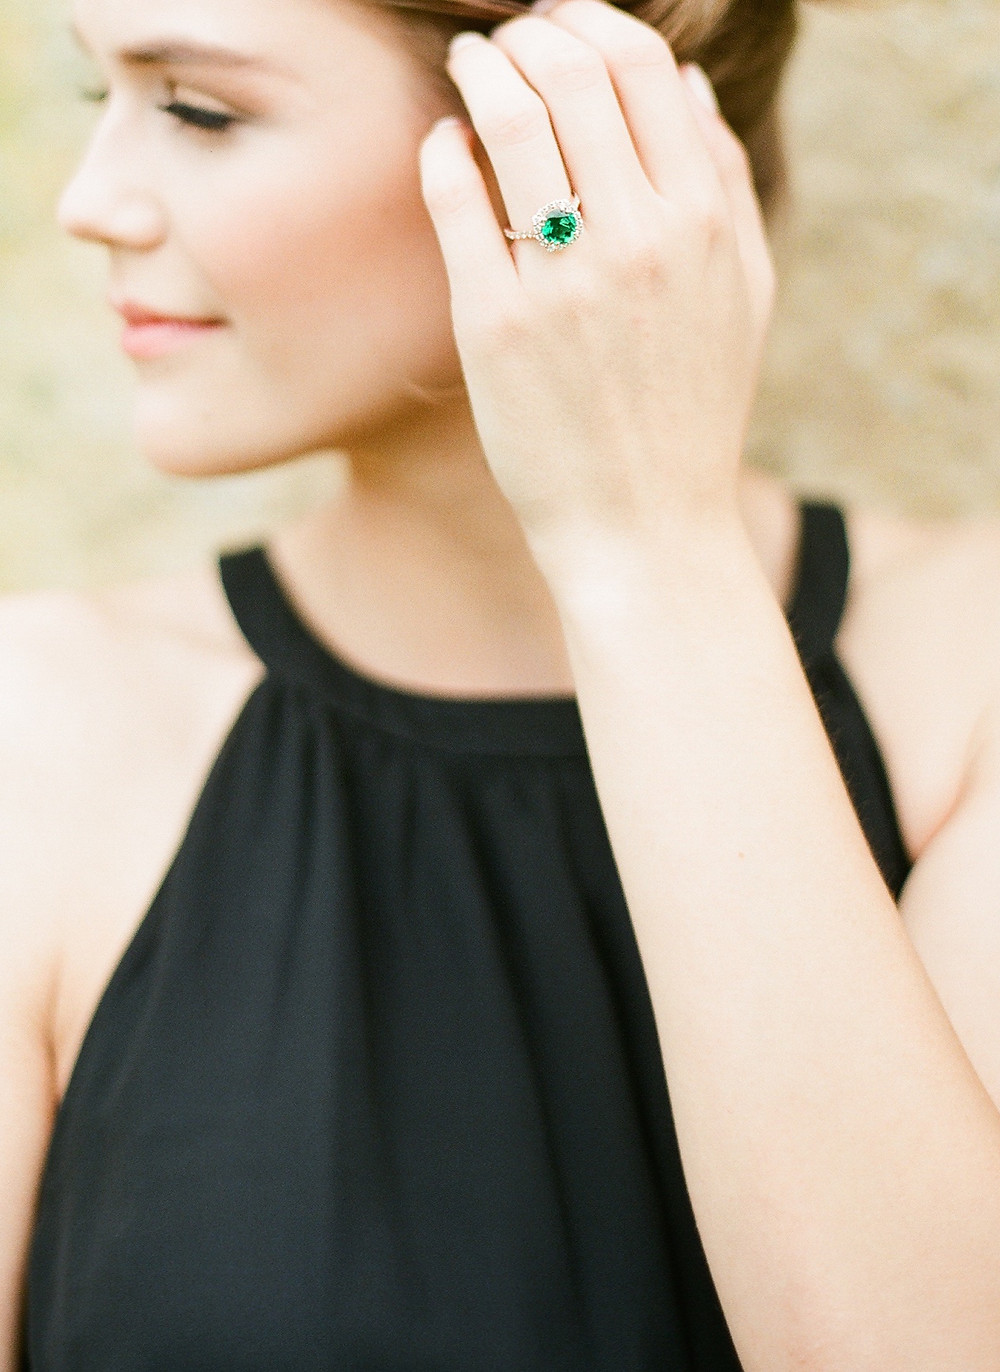 Large Emerald and diamond engagement ring on fingers in McKinney Texas